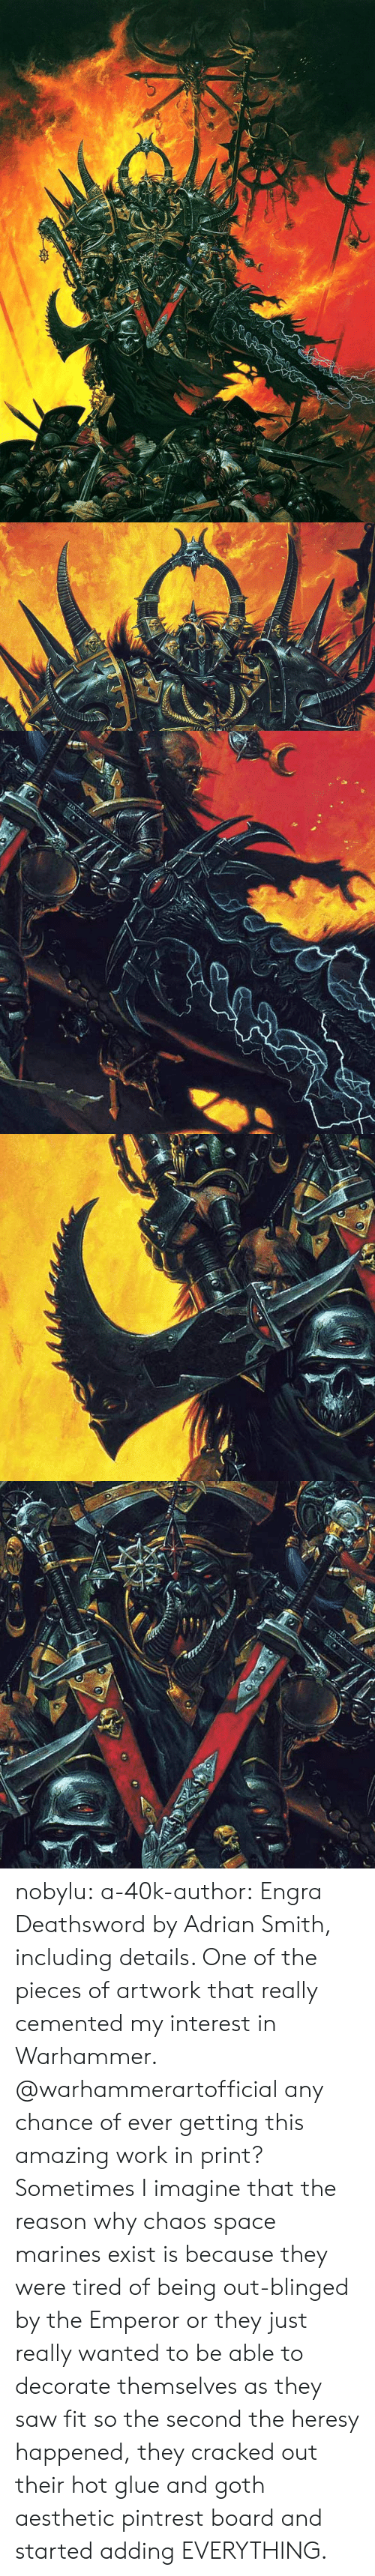 Marines: nobylu:  a-40k-author: Engra Deathsword by Adrian Smith, including details. One of the pieces of artwork that really cemented my interest in Warhammer.  @warhammerartofficial any chance of ever getting this amazing work in print?    Sometimes I imagine that the reason why chaos space marines exist is because they were tired of being out-blinged by the Emperor or they just really wanted to be able to decorate themselves as they saw fit so the second the heresy happened, they cracked out their hot glue and goth aesthetic pintrest board and started adding EVERYTHING.